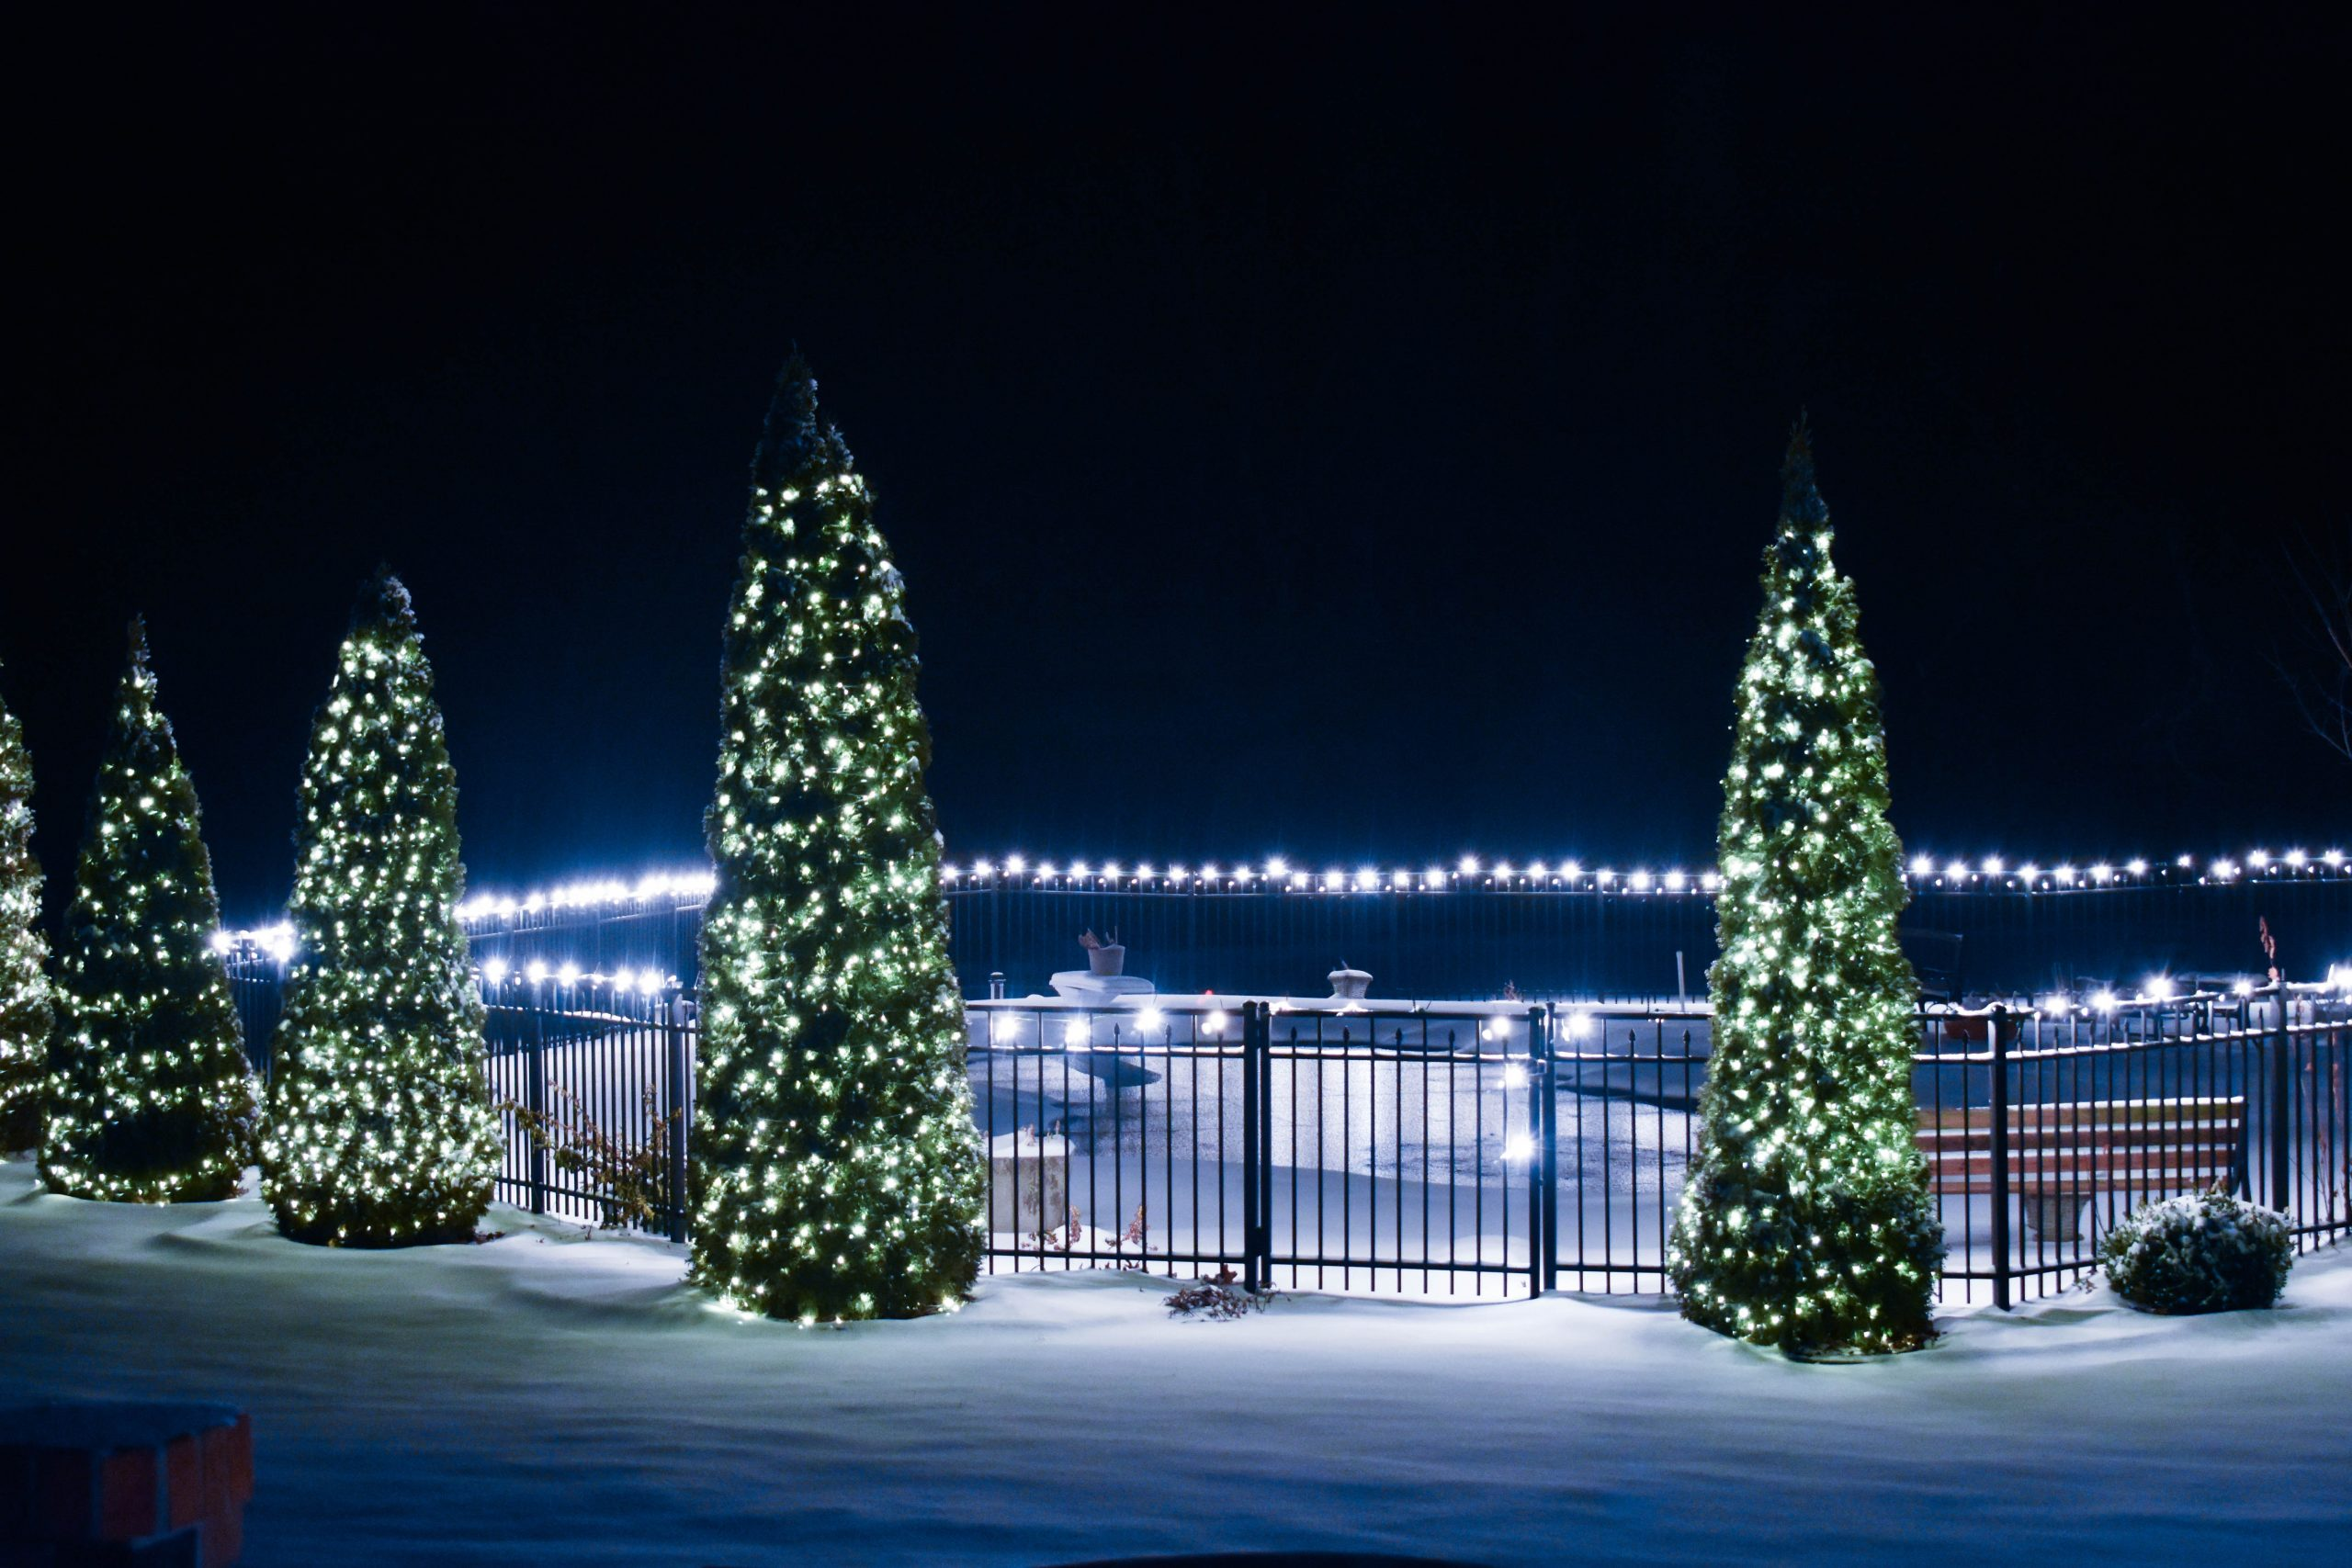 A line of outdoor Christmas trees with lights on a snowy night to showcase the Christmas decorations.